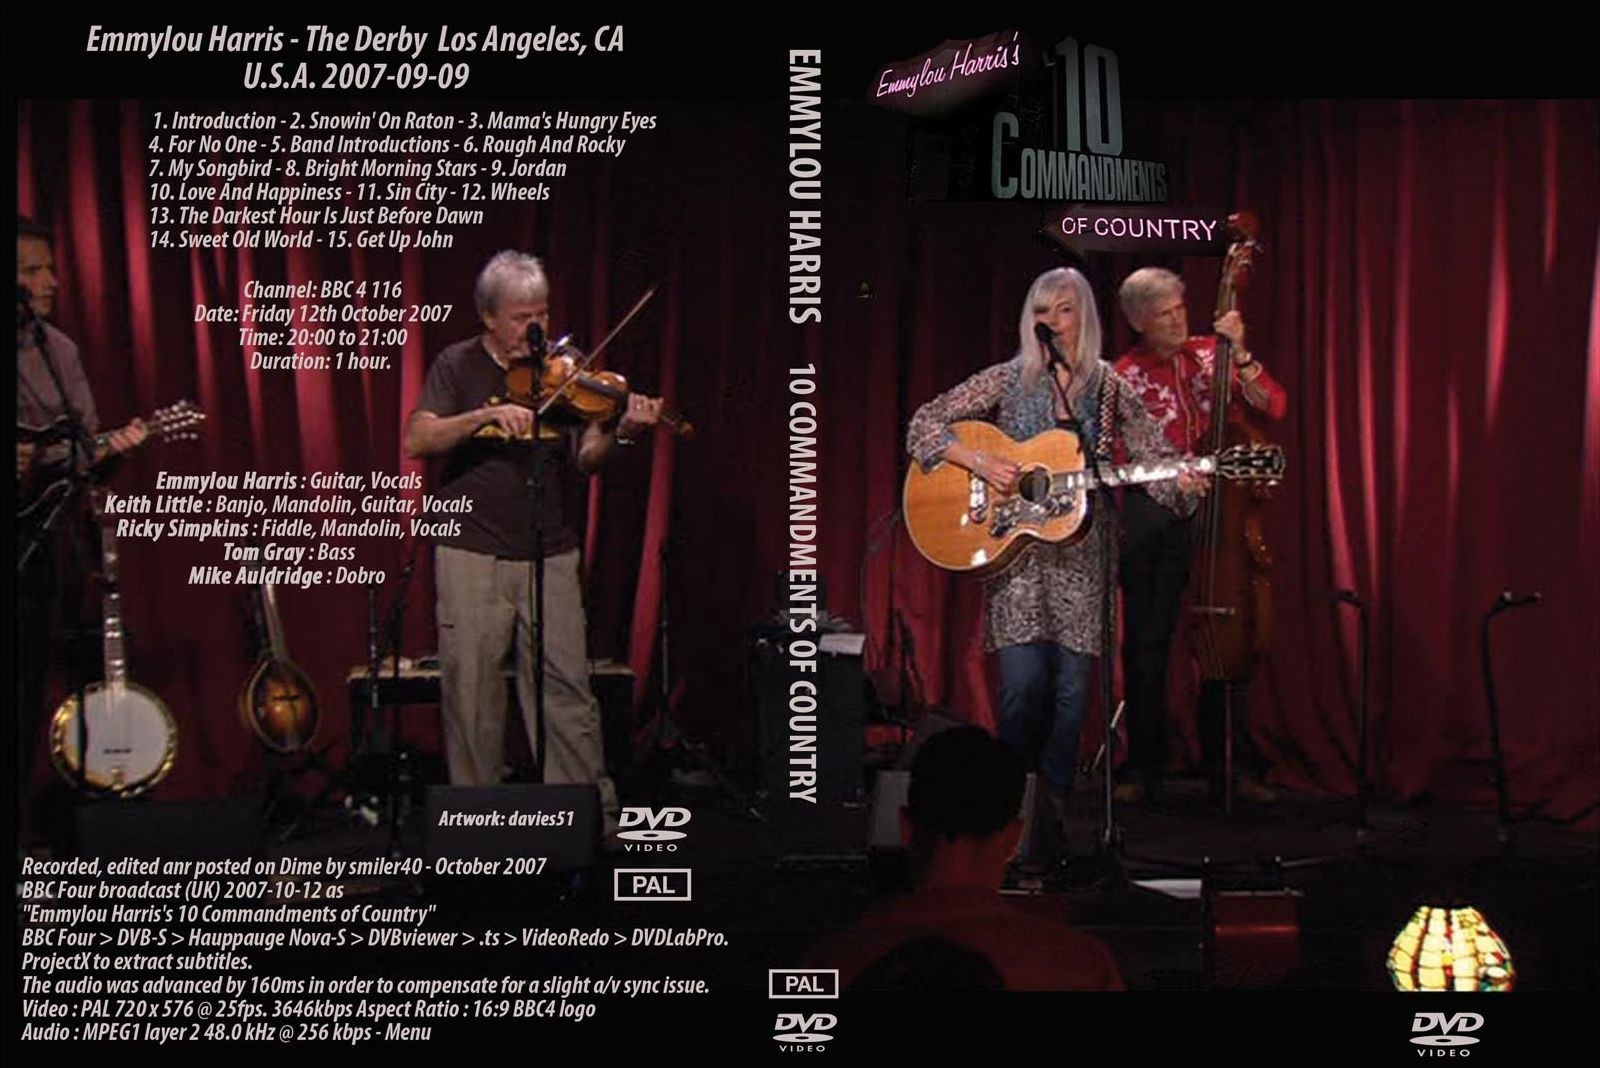 Peter C's Music TV & Video Archives: EMMYLOU HARRIS on DVD Emmylou Harris Country Radio